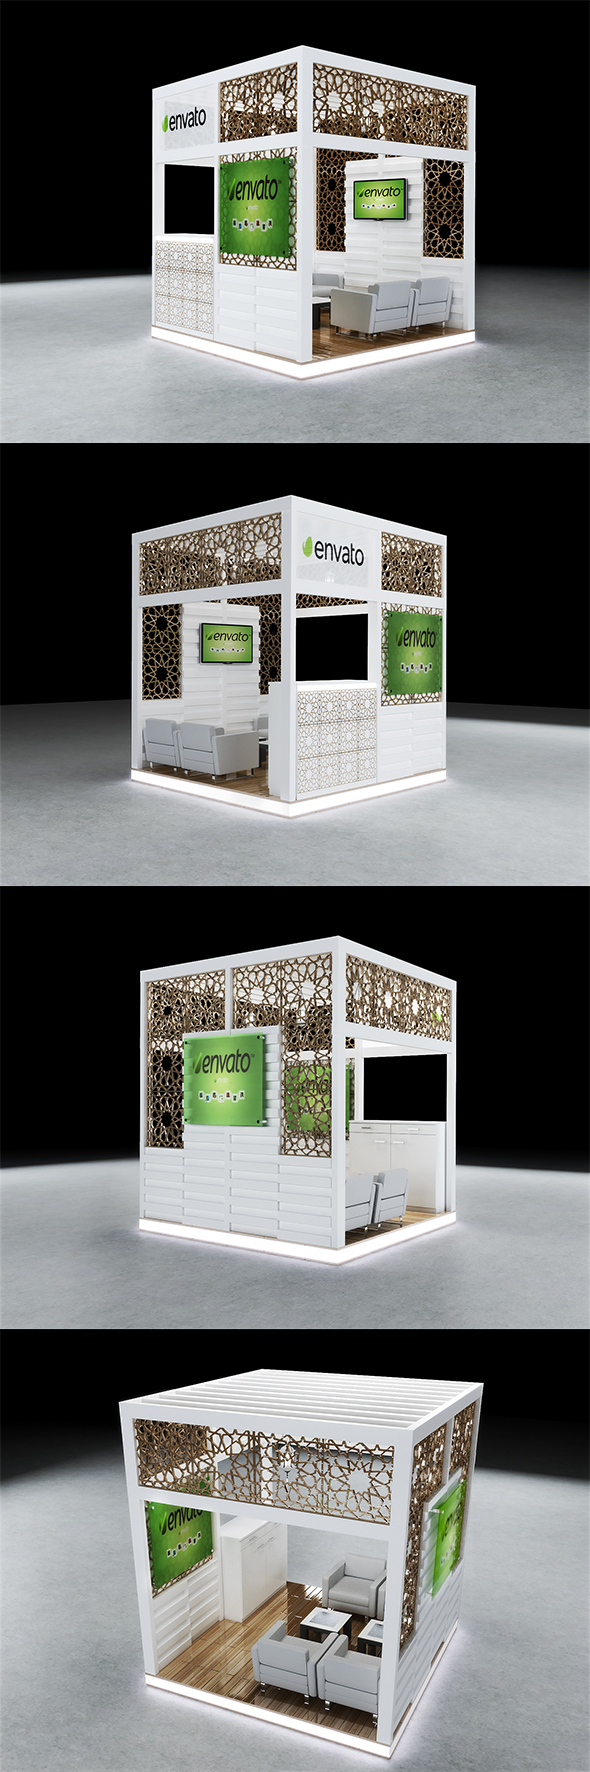 3DOcean Exhibition Booth Design 3Mx3Mx3M 20192563